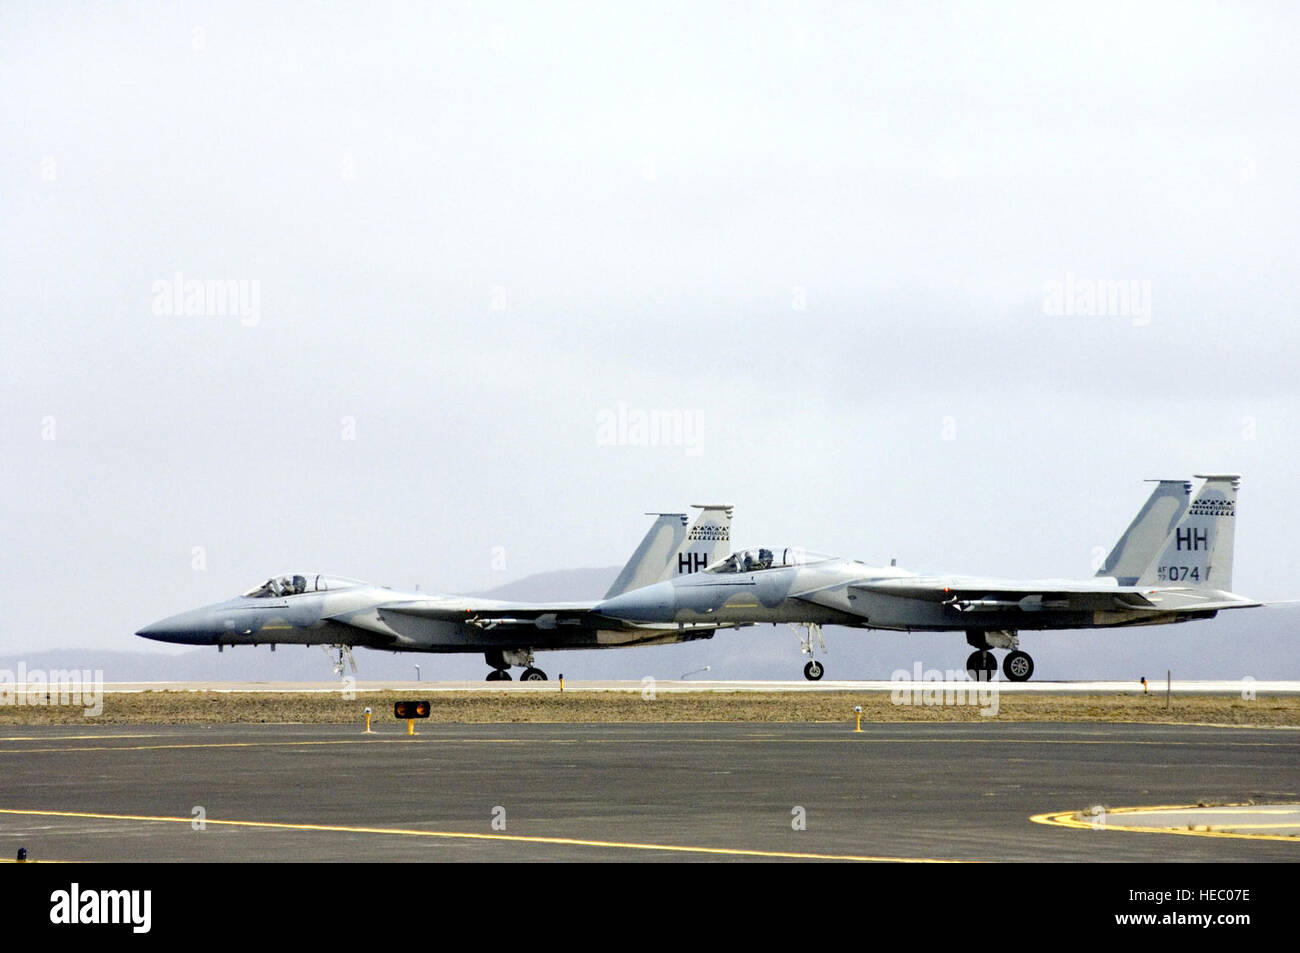 F 15 eagles wait to take off from naval air station keflavik stock f 15 eagles wait to take off from naval air station keflavik iceland on monday may 22 2006 airmen and sailors are reducing operations after more than freerunsca Images